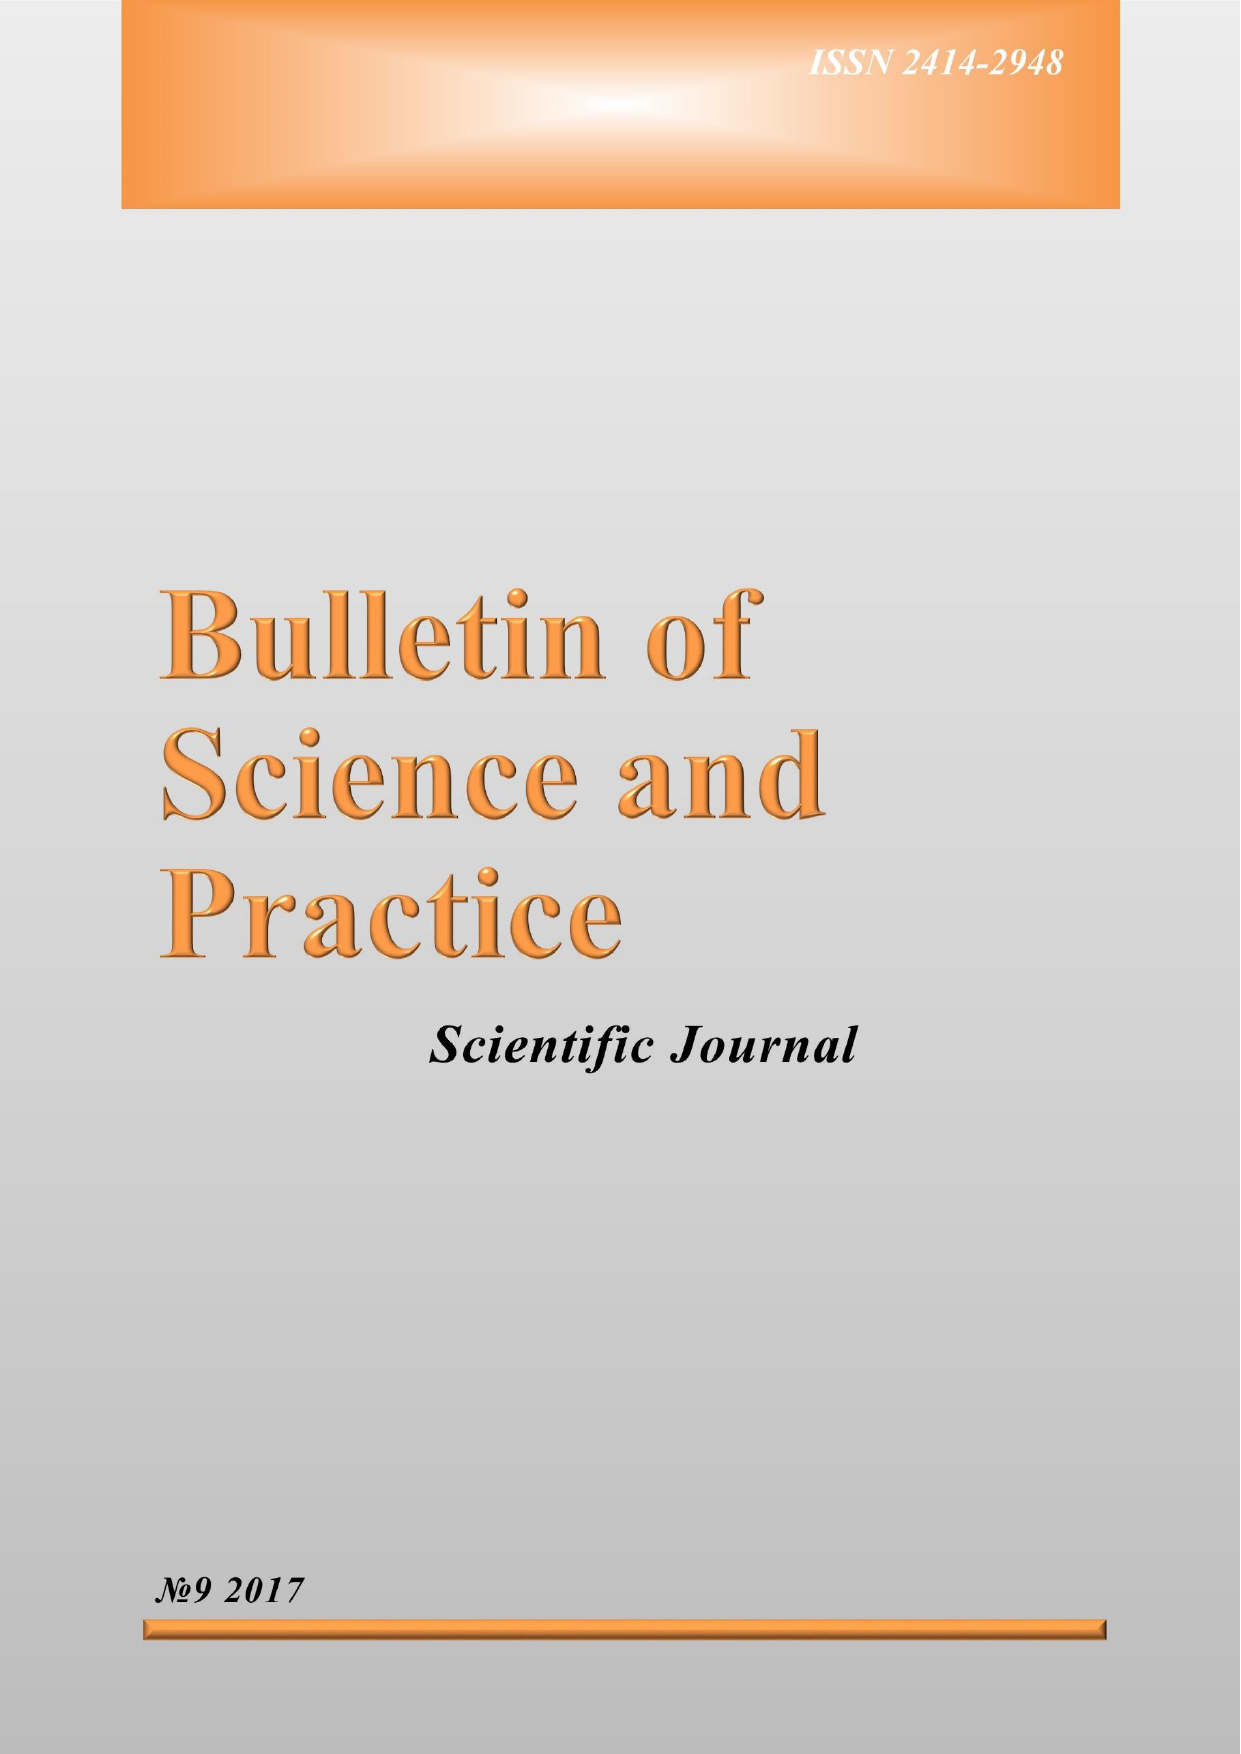 ae7e81bc4e13b Bulletin of Science and Practice 9 (22) 2017